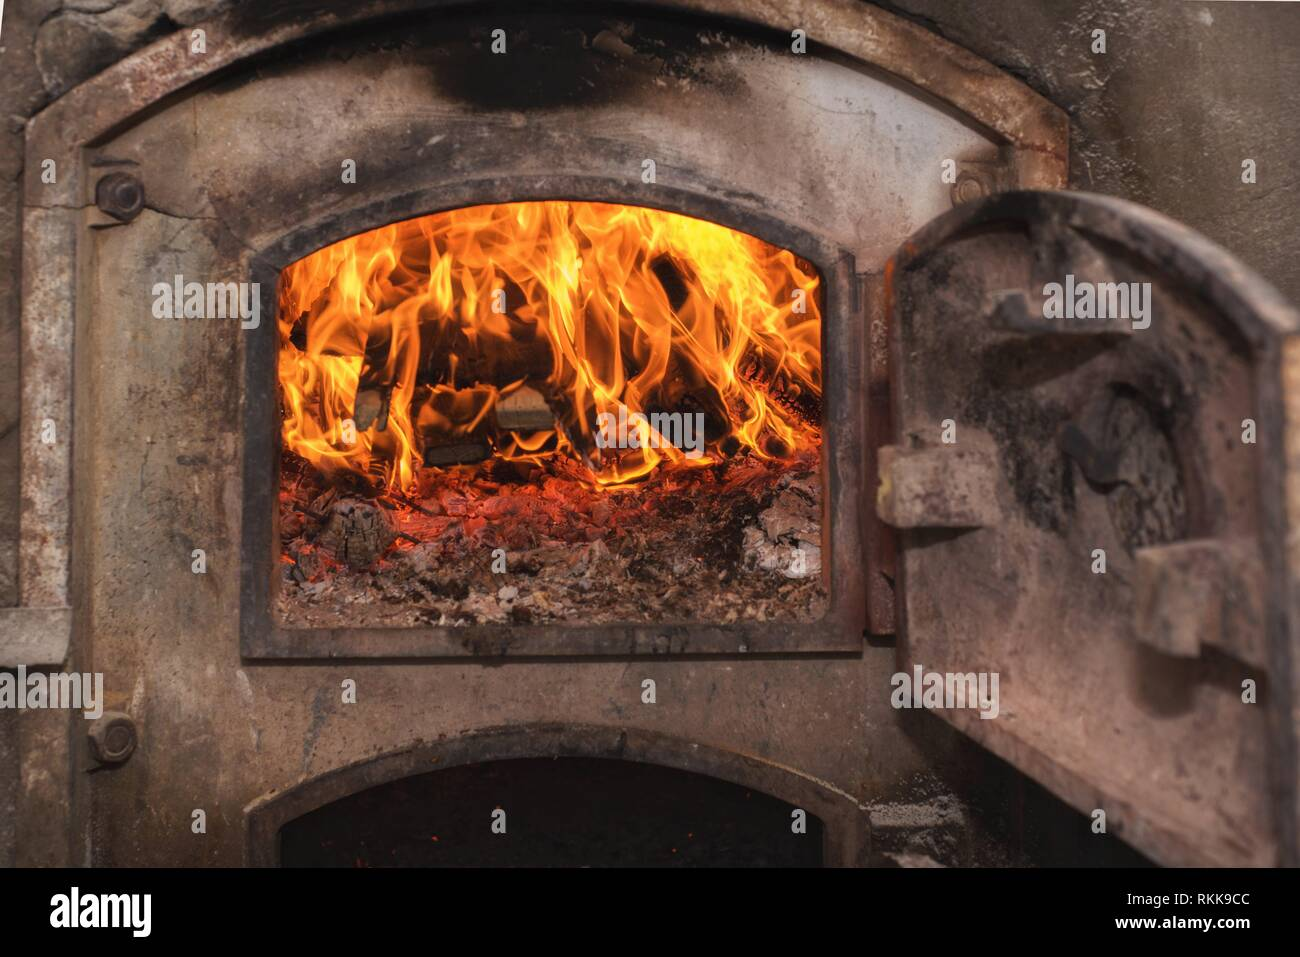 Fire wood in ancient rust stove. - Stock Image